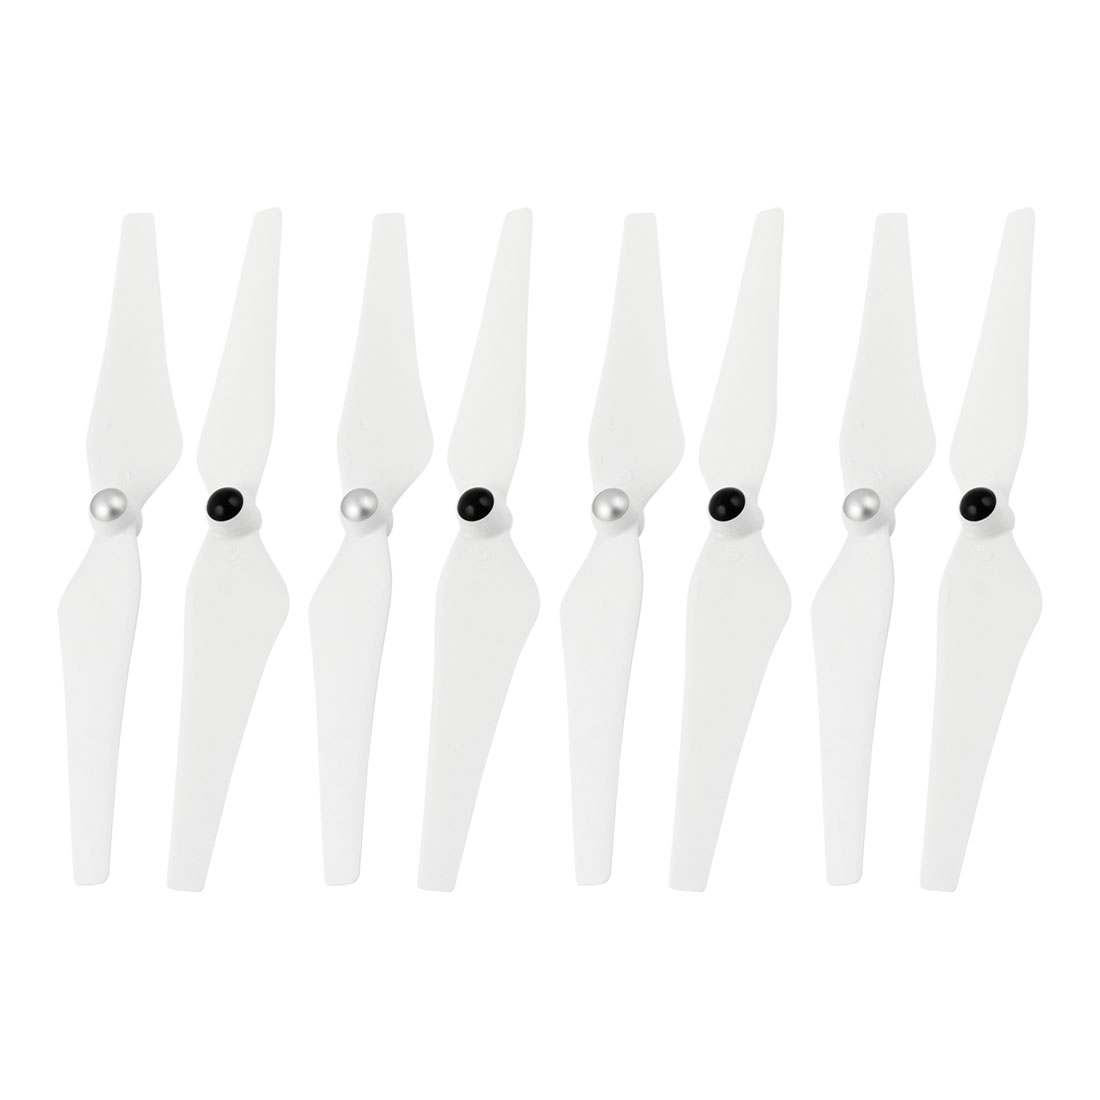 "4 Pairs 9"" 9443 Self-Tightening CW CCW Propeller Prop for DJI Phantom 2 Vision"